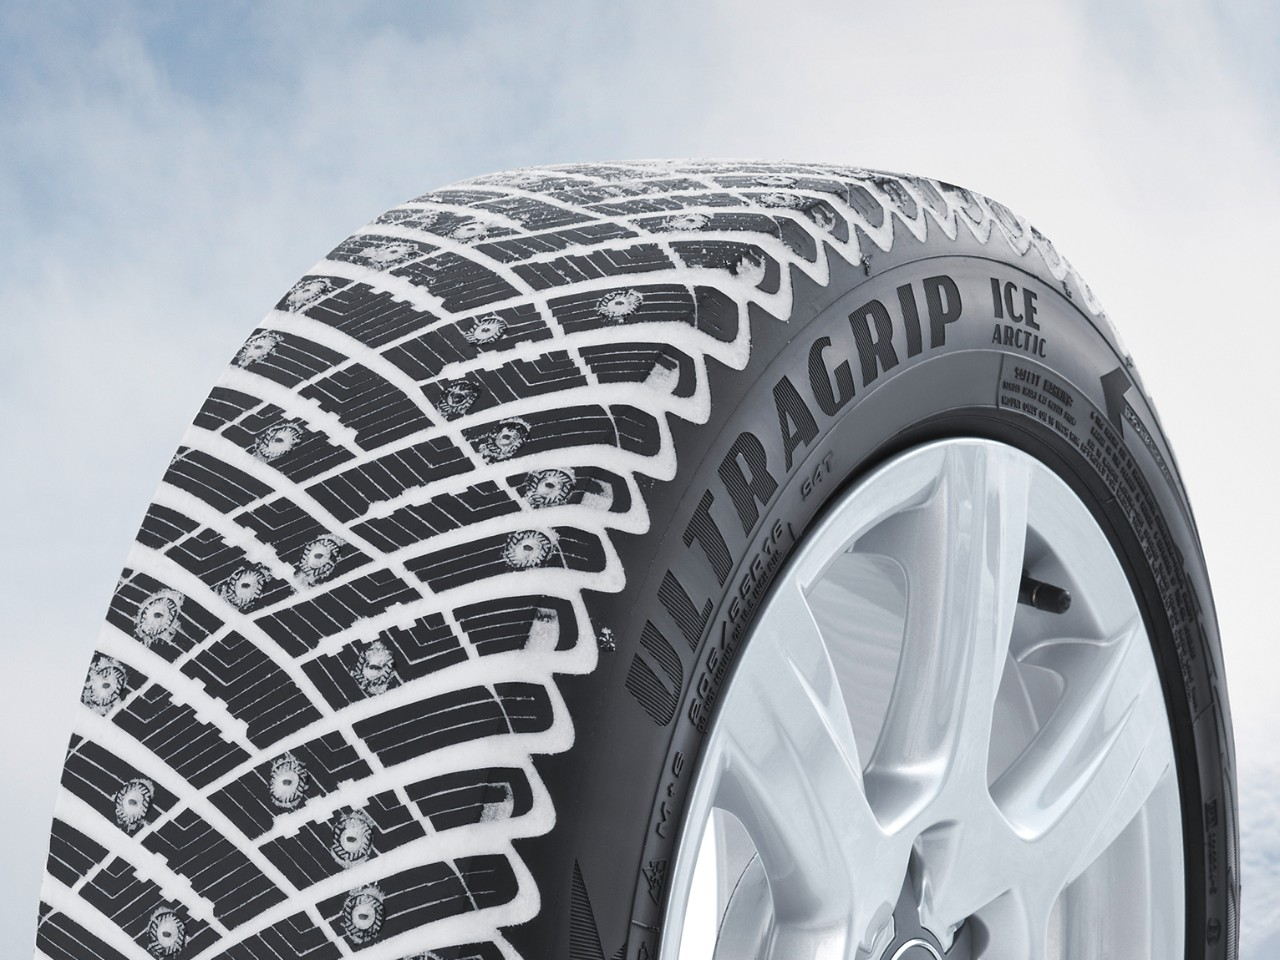 Goodyear Winter Tyre UltraGrip close up